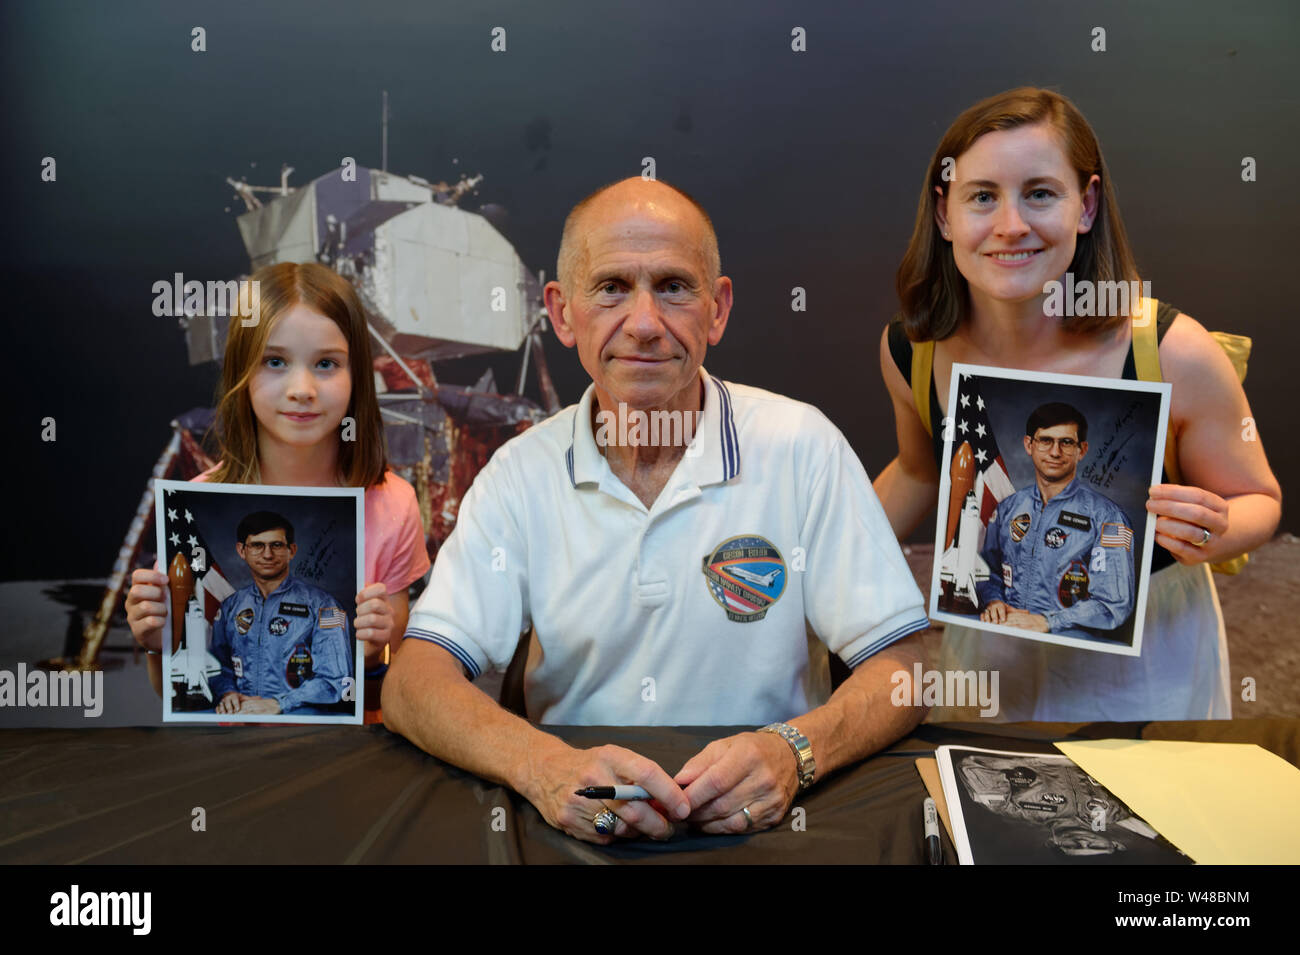 Garden City, New York, USA. 20th July, 2019. At center, NASA Space Shuttle astronaut BOB CENKER poses with, at left, LUCY DEEGAN, 8, and MEREDITH DEEGAN, both of Swords, a town near Dublin, Ireland, at the Moon Fest Apollo at 50 Countdown Celebration at Cradle of Aviation Museum in Long Island, held at the same time the Apollo 11 Lunar Module, The Eagle, landed on the Moon 50 years ago. Deegan free up in Greenlawn, NY. Credit: Ann Parry/ZUMA Wire/Alamy Live News - Stock Image